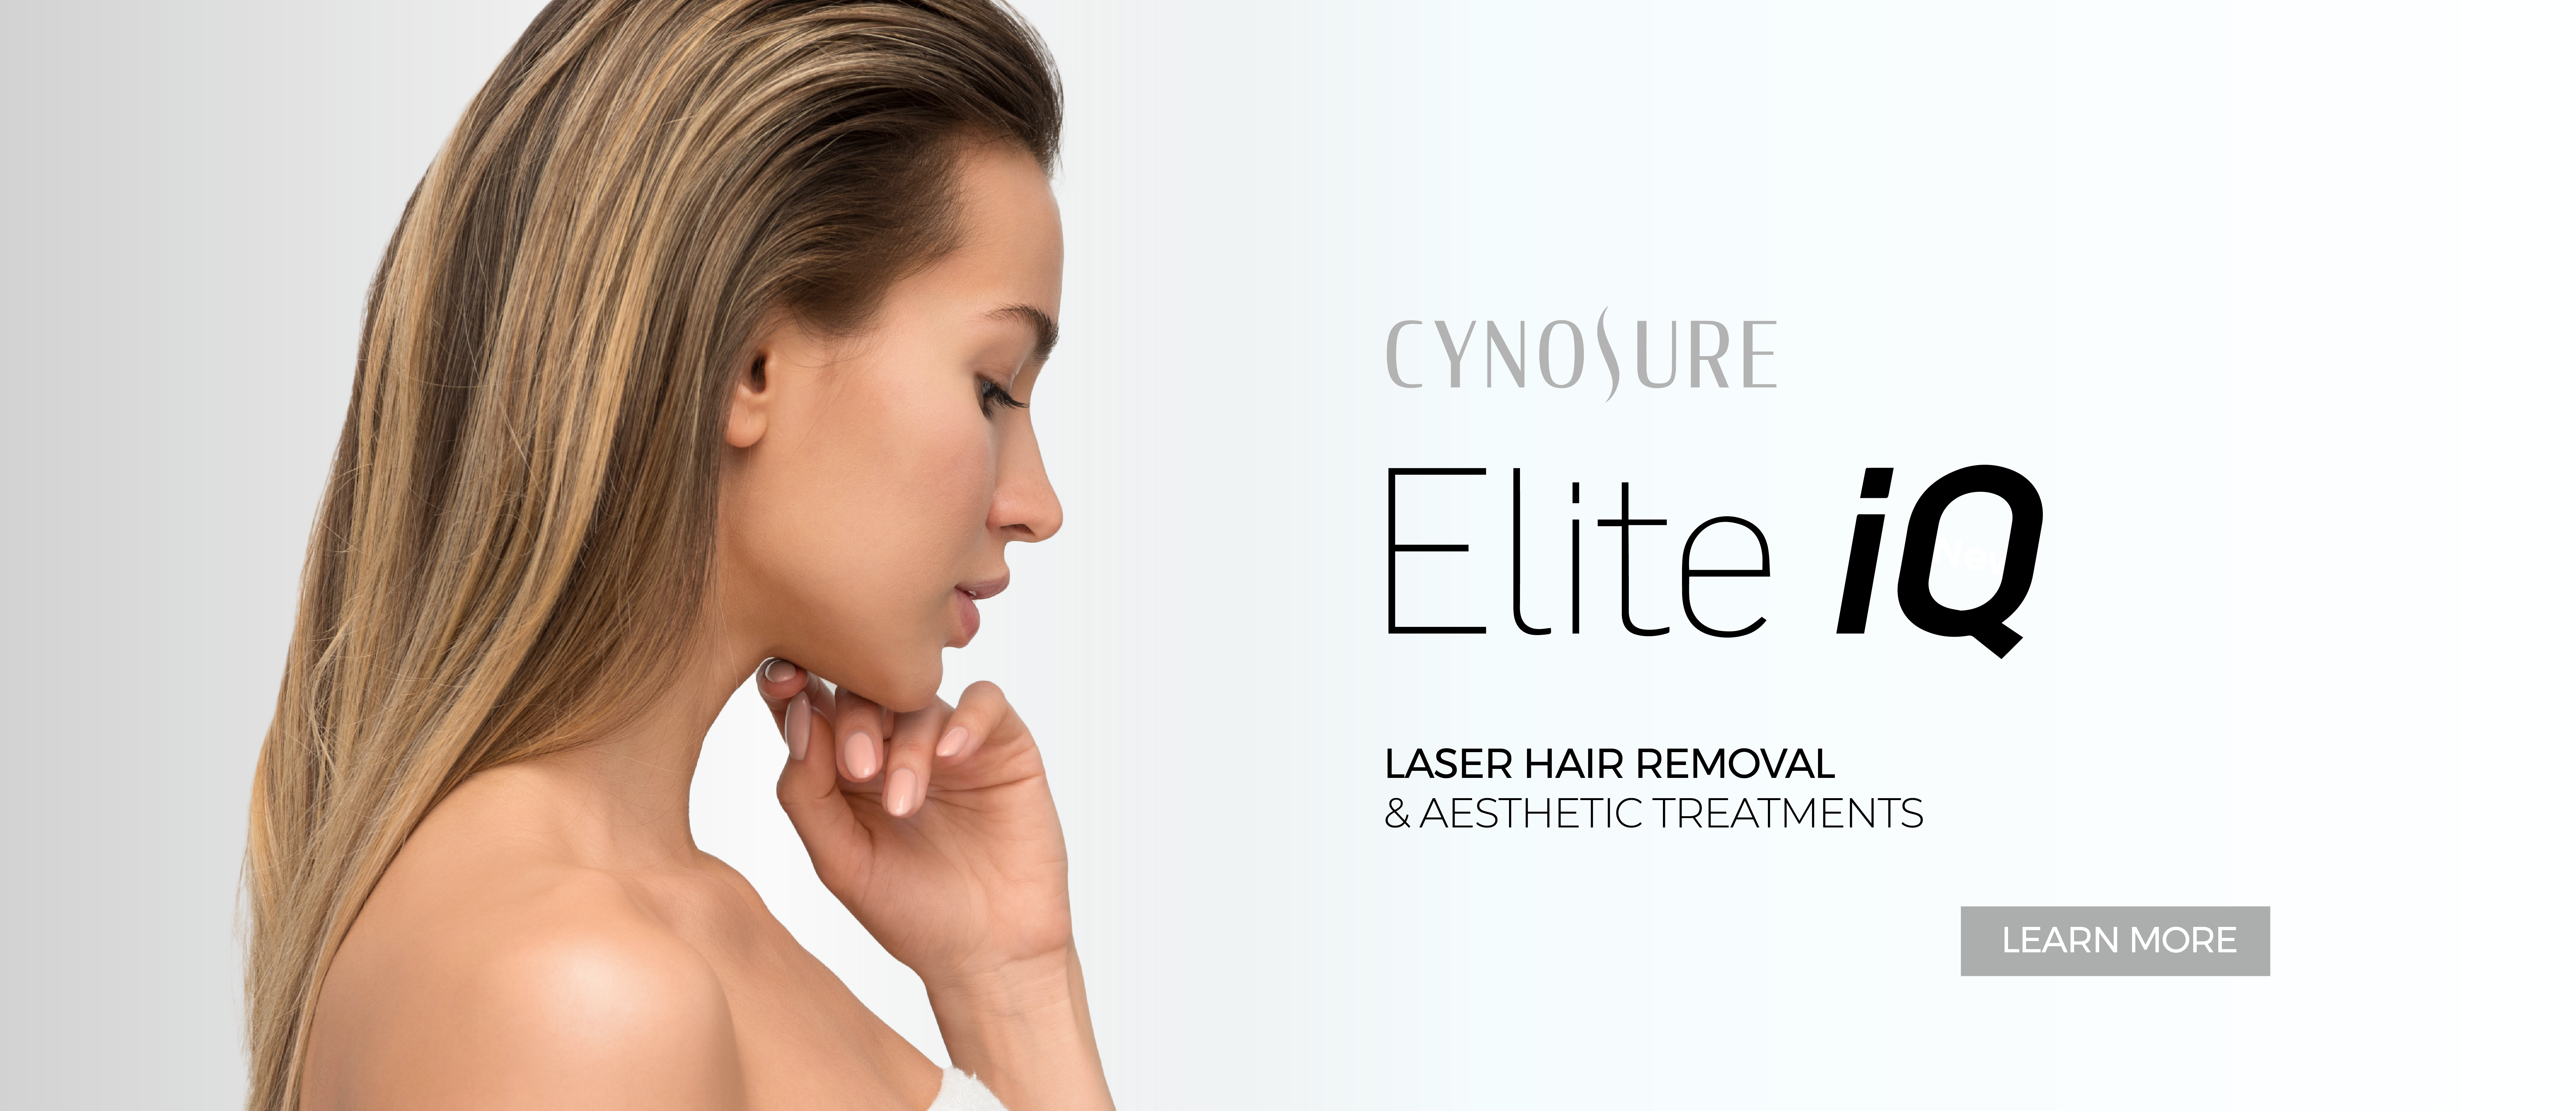 Laser Hair Removal and aesthetic treatments with Elite iQ from Cynosure, available at Papillon Bleu Aesthetics in Coquitlam, British Columbia Canada